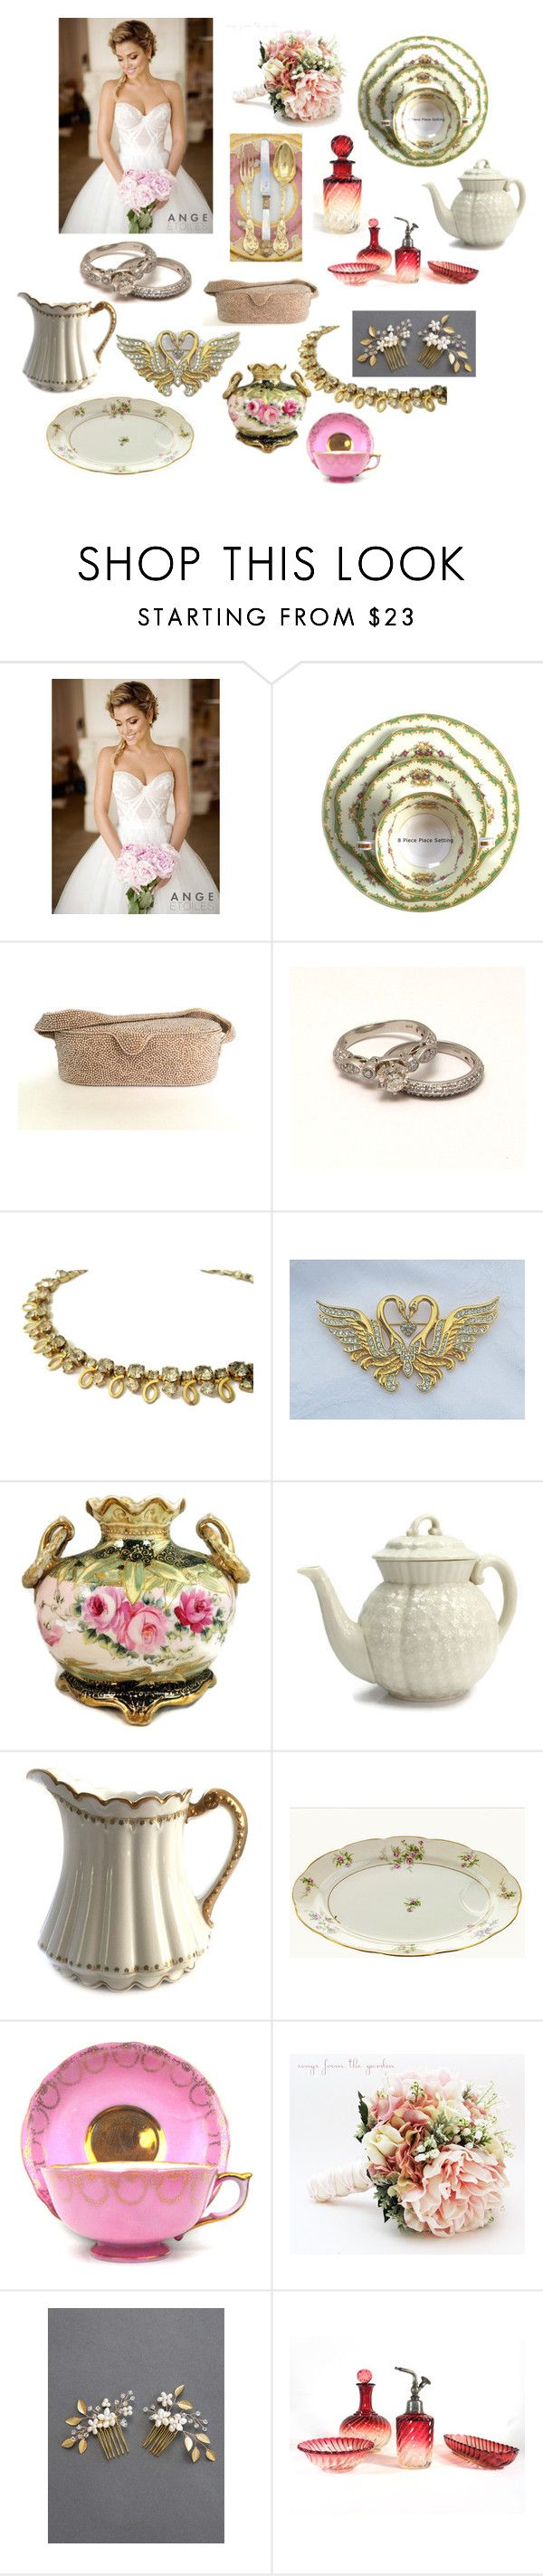 """""""Bridal Registry"""" by patack ❤ liked on Polyvore featuring Noritake, Lenox, Haviland and vintage"""